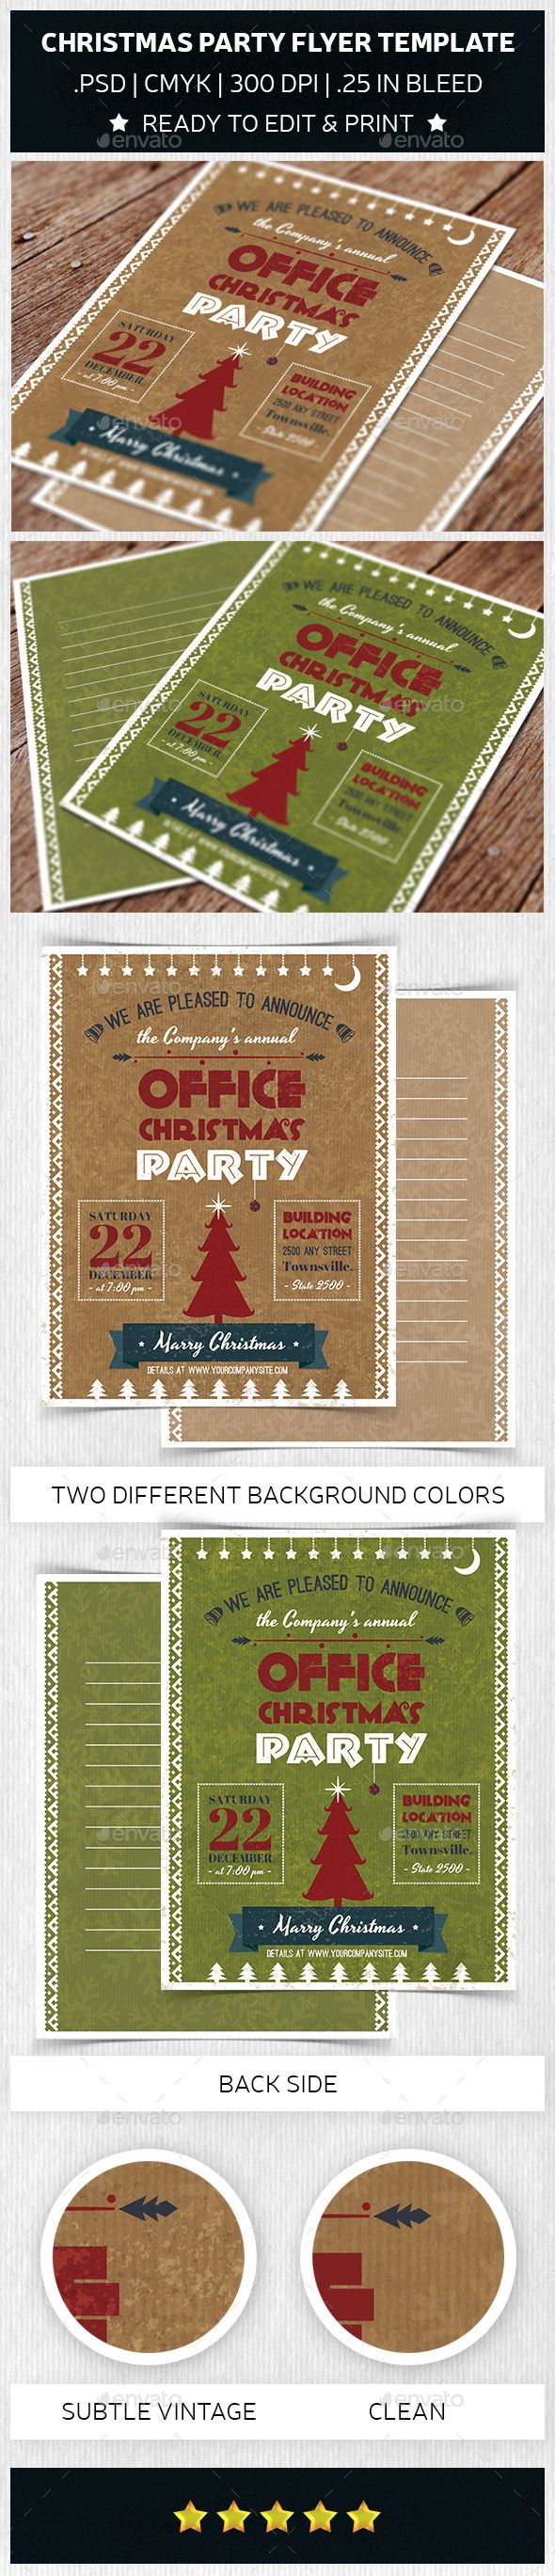 Christmas Party Flyer Template Trend 1756 best